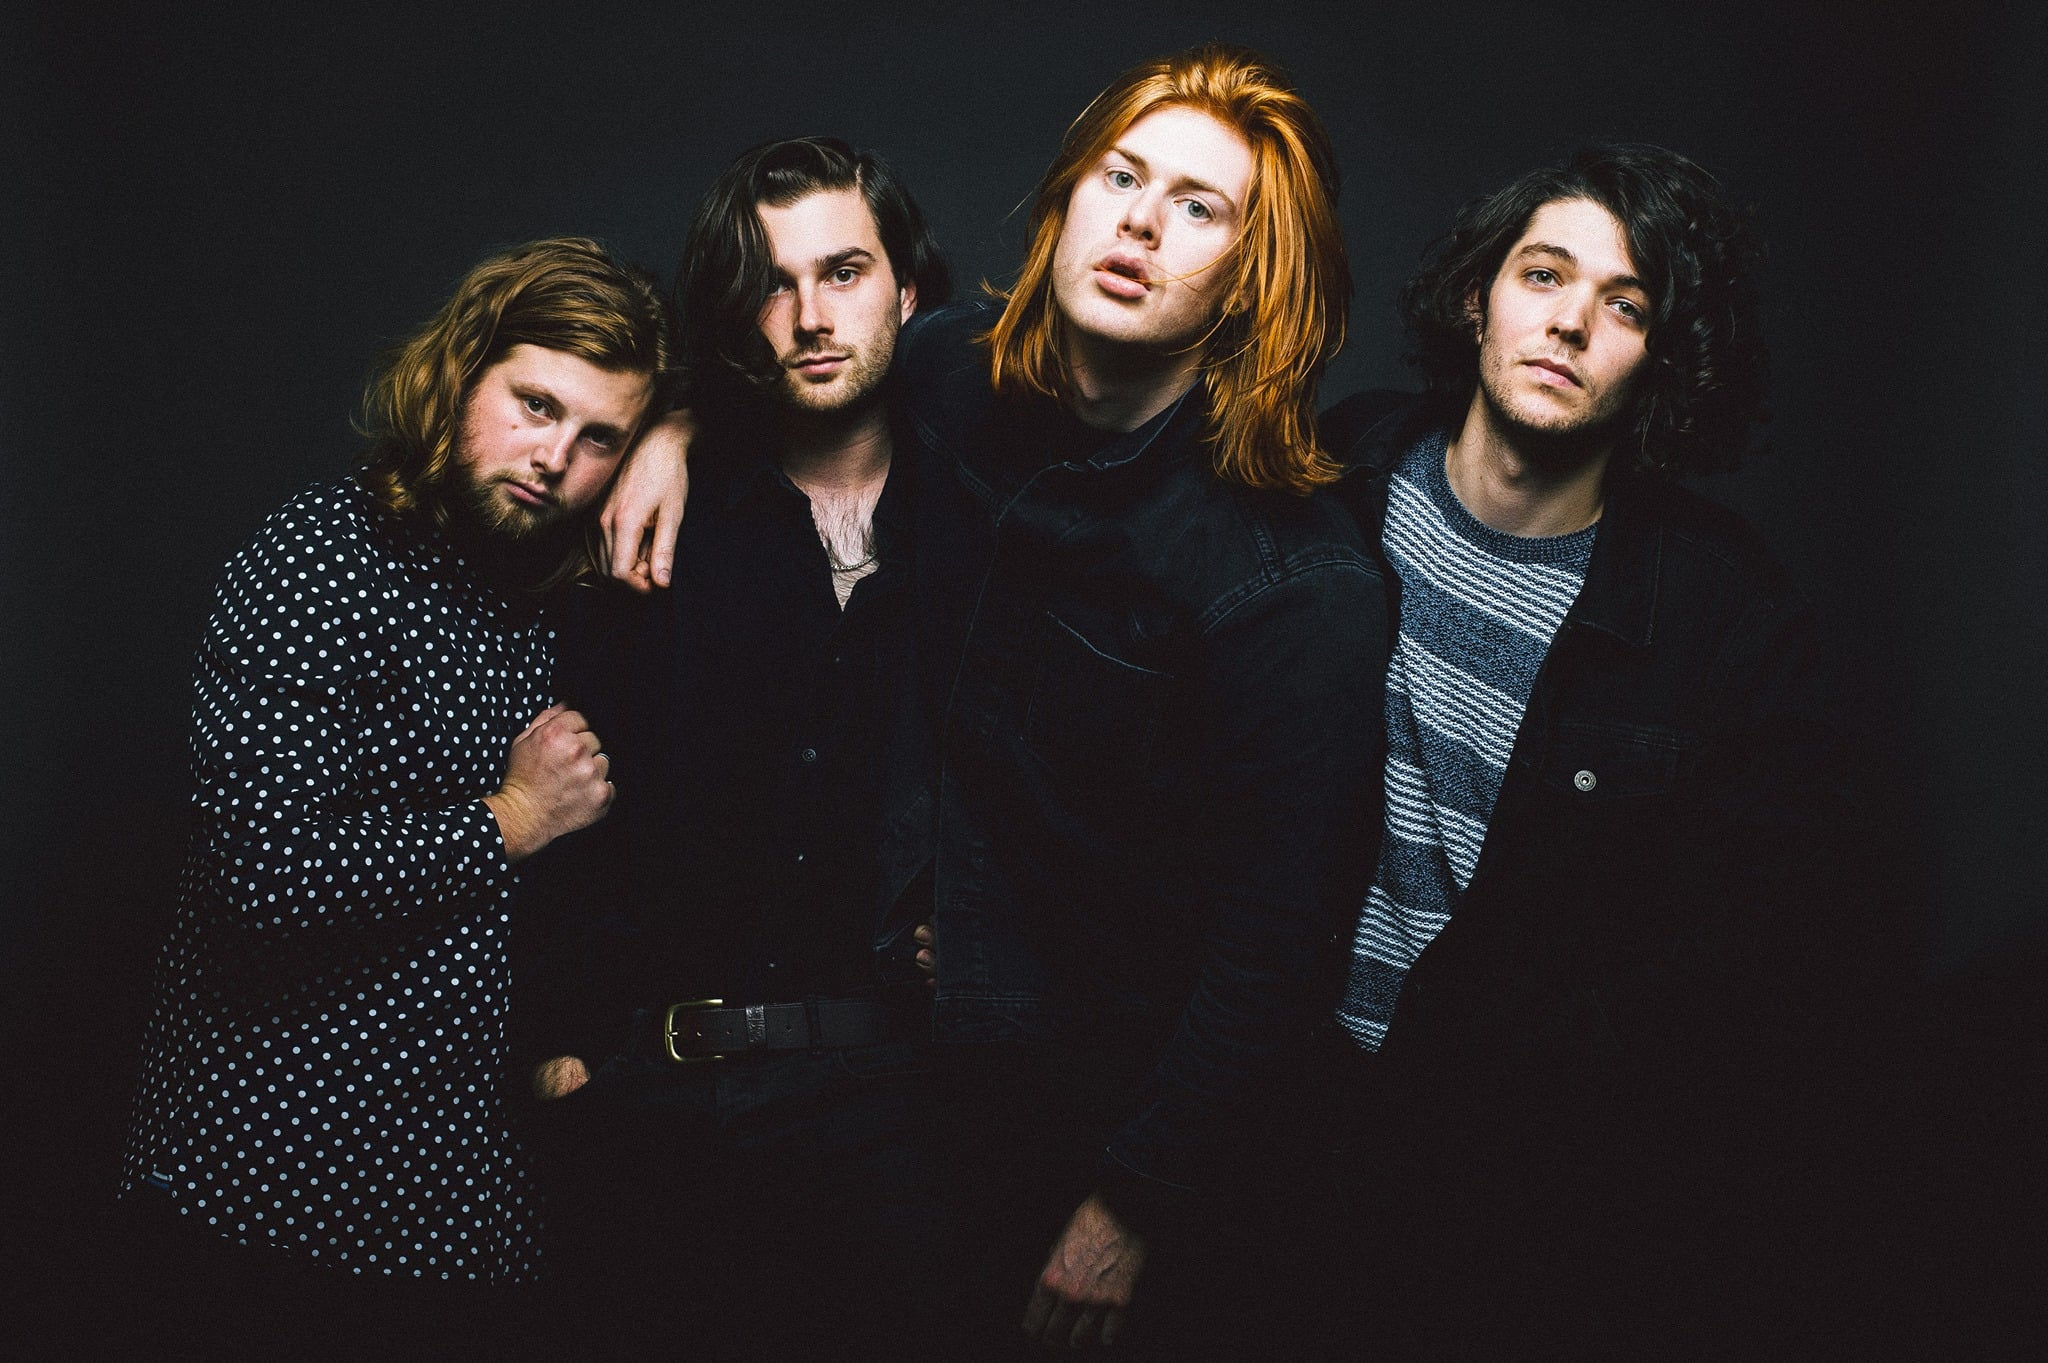 INTERVIEW TIME – The Amazons